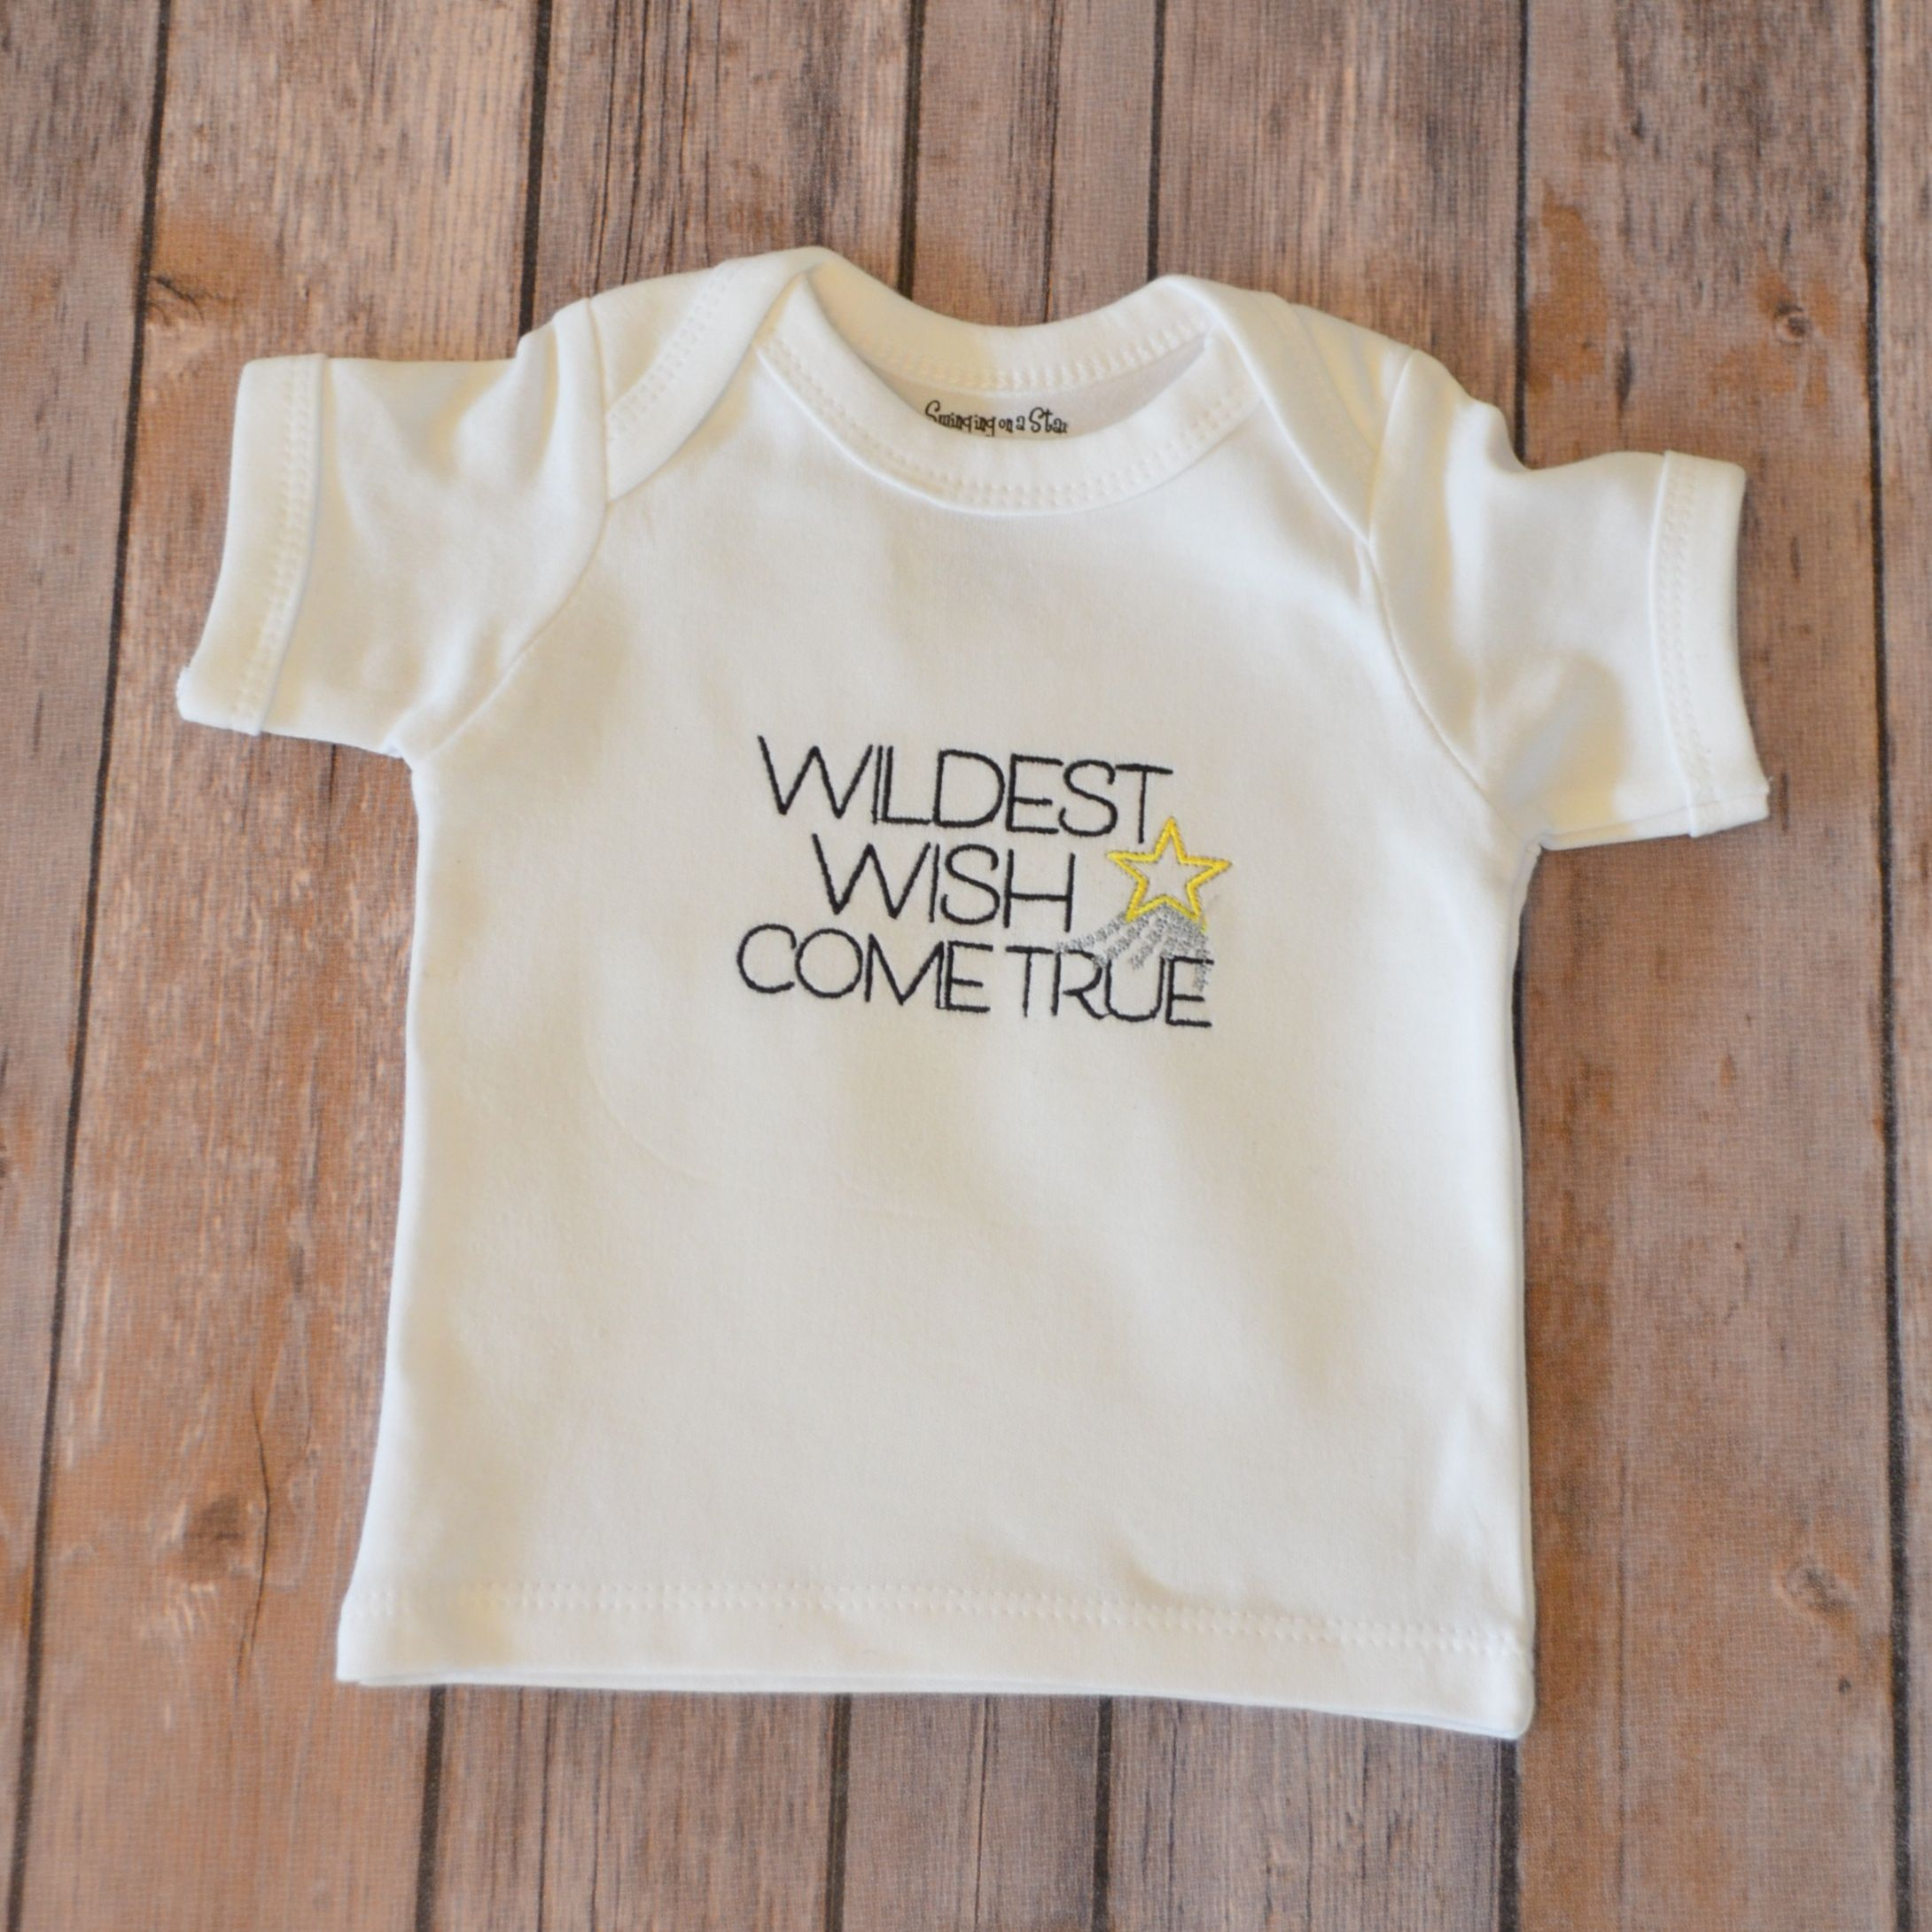 Custom adoption baby gifts adoption nursery and infant toddler baby onesie adoption gifts baby gifts ivf infertility custom embroidery wildest negle Choice Image